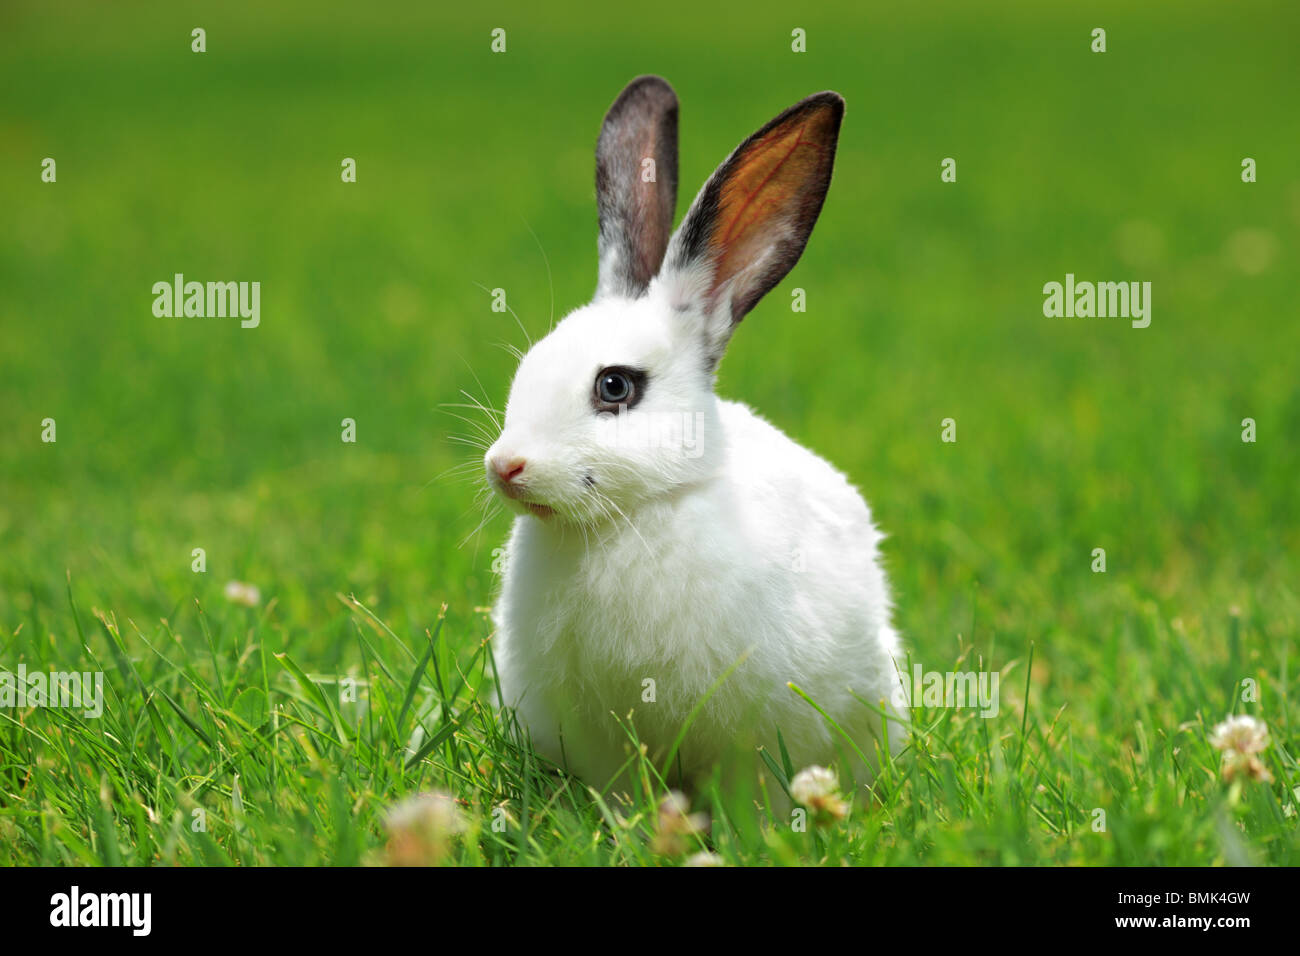 A view of a white rabbit on a green grass - Stock Image